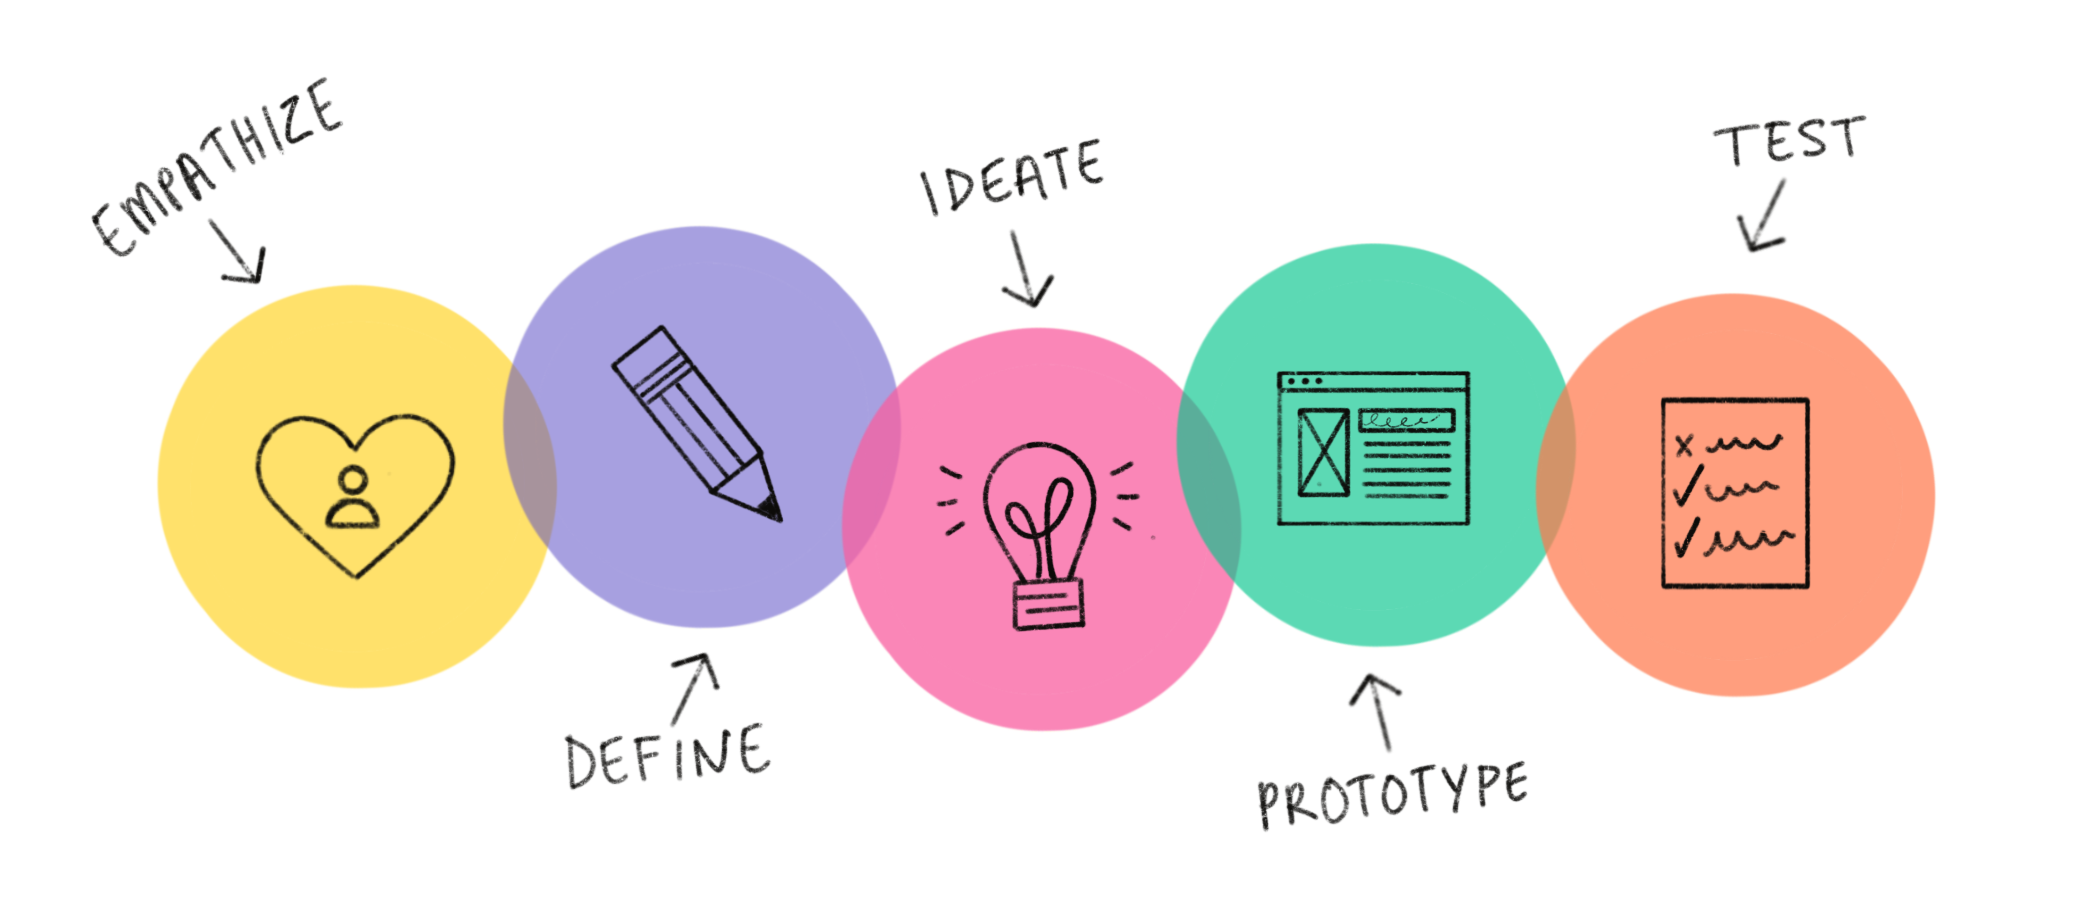 Design thinking master quest: The design thinking steps